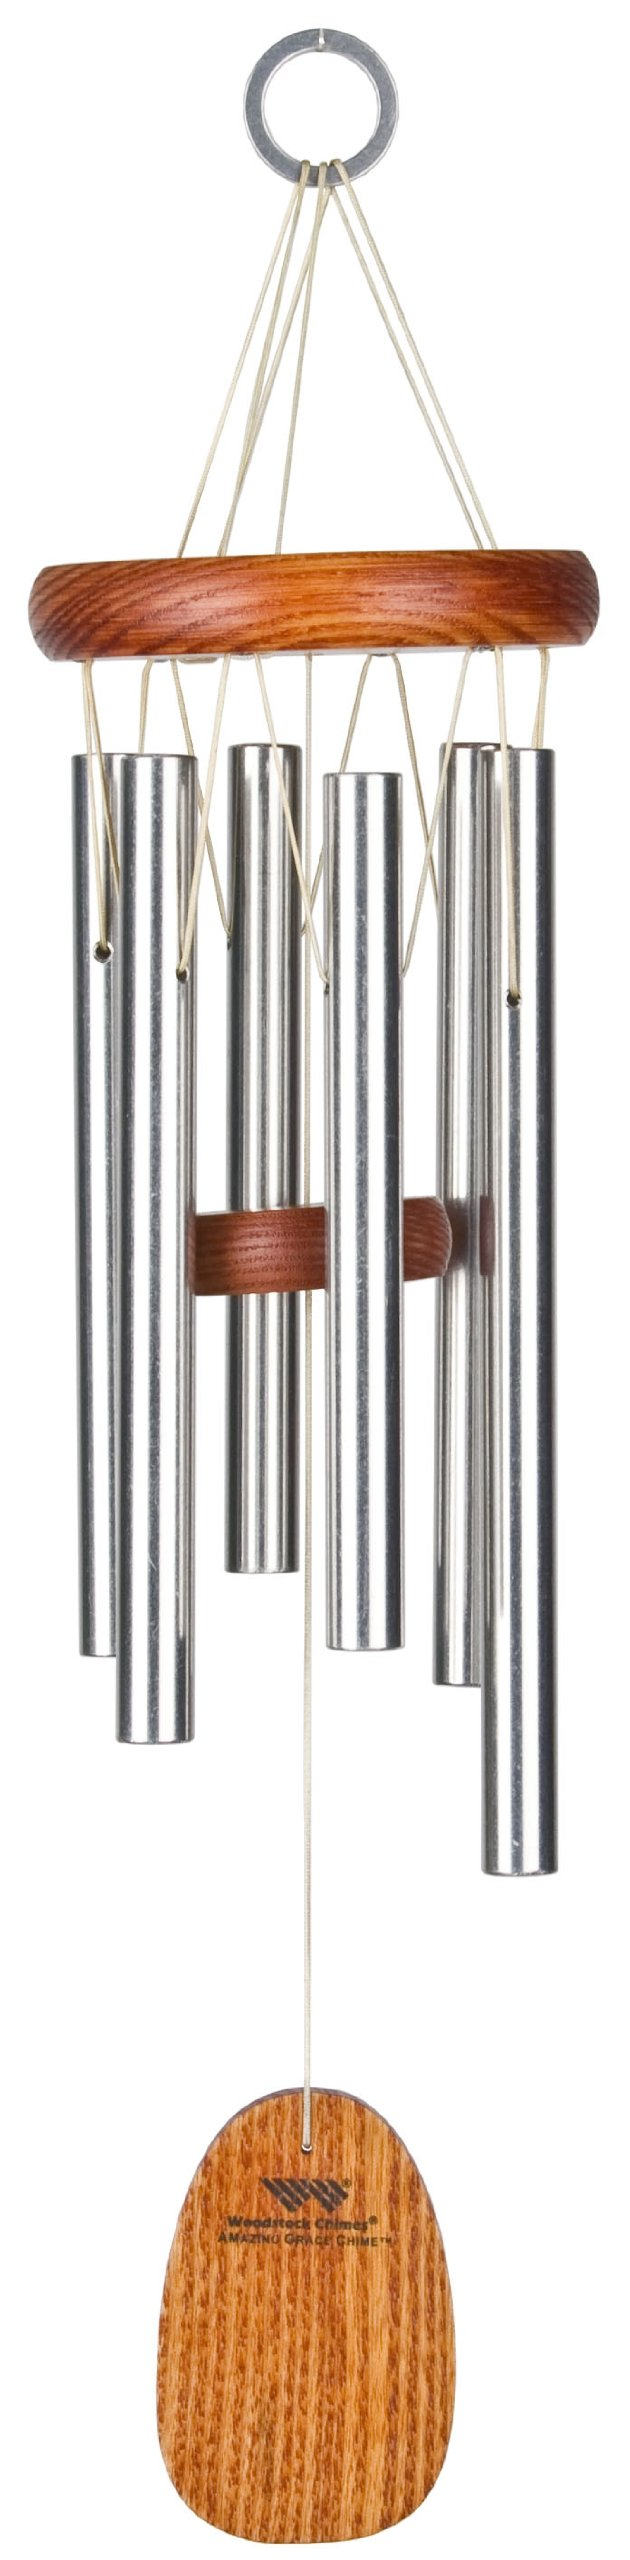 Woodstock Chimes AGSS Amazing Grace Chime, Small Silver